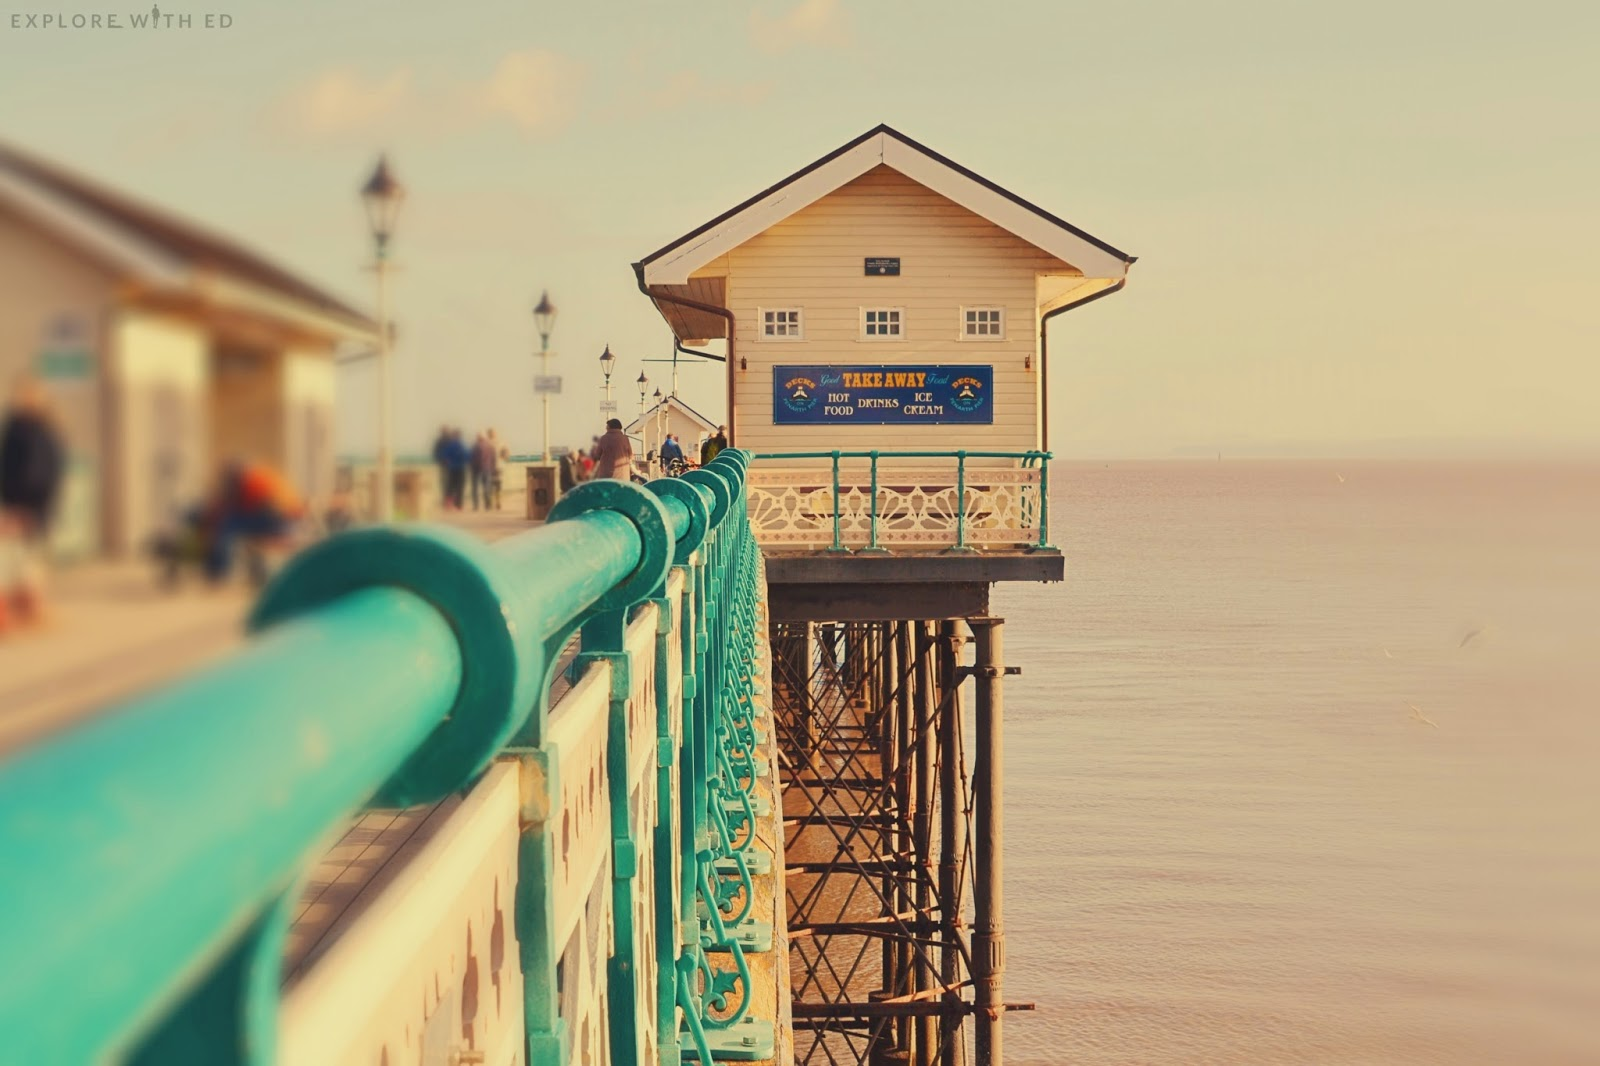 View over the edge of Penarth Pier